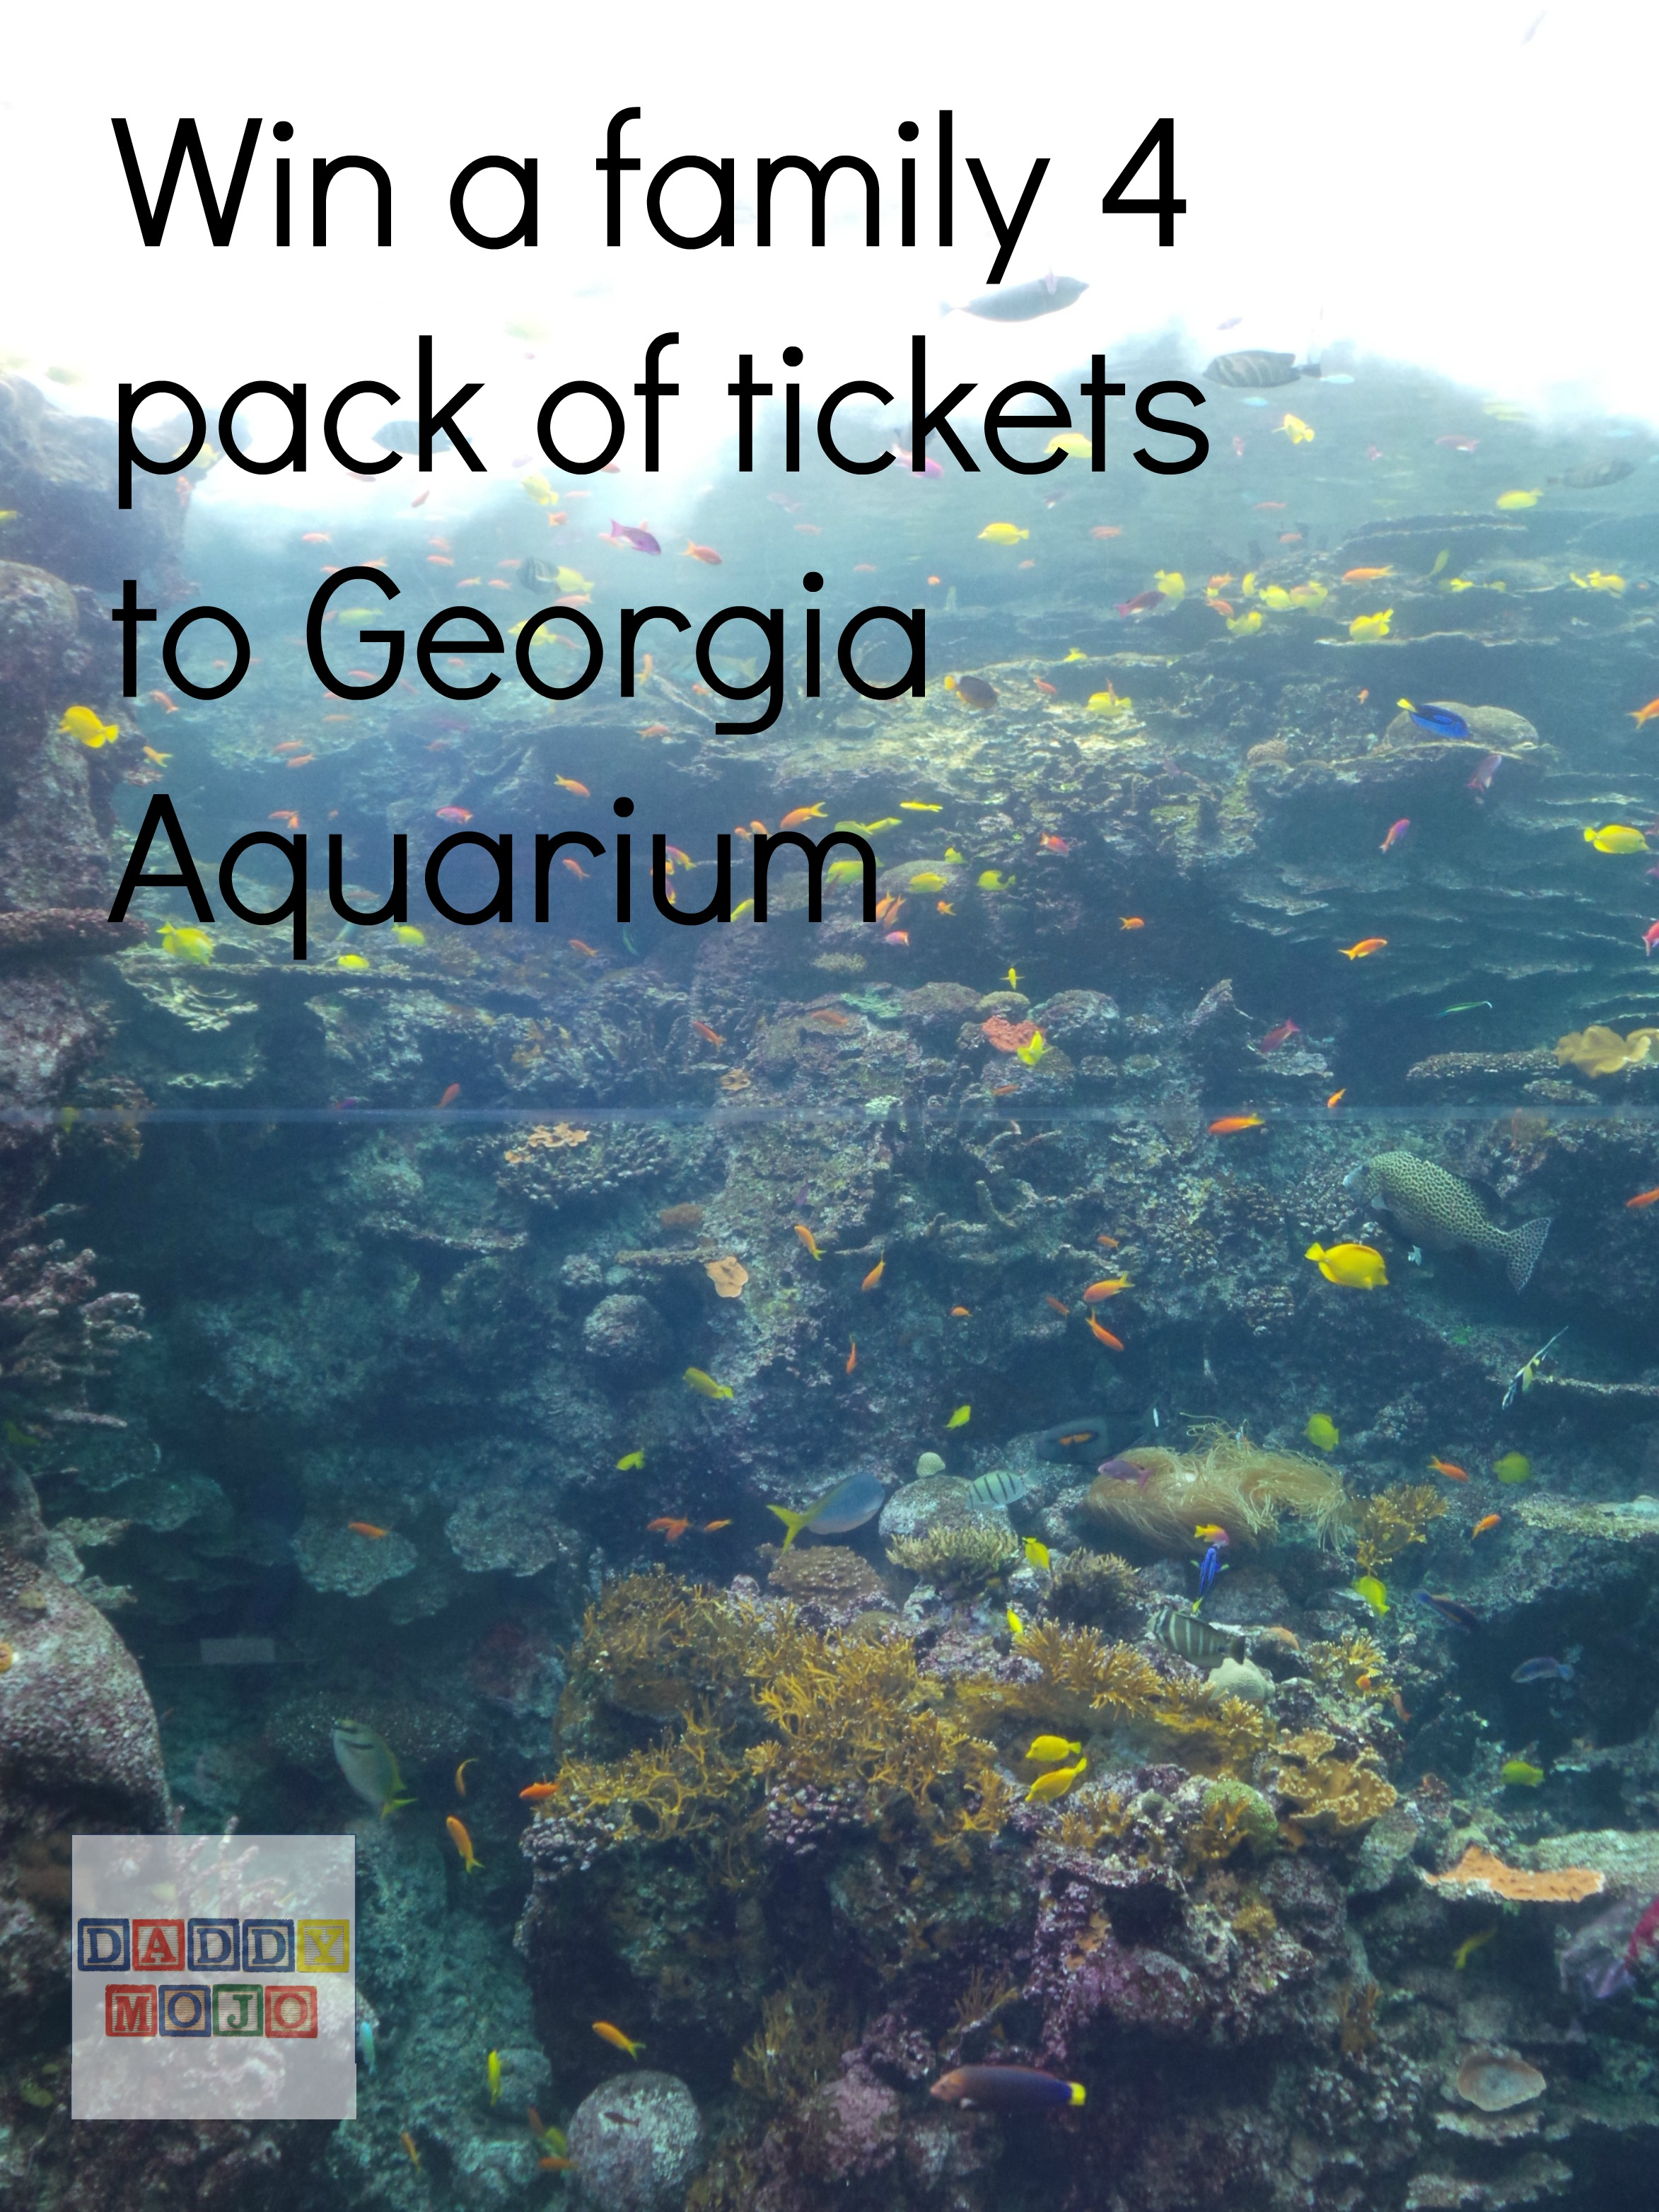 Win Tickets To Georgia Aquarium For A Family Of 4 Daddy Mojo